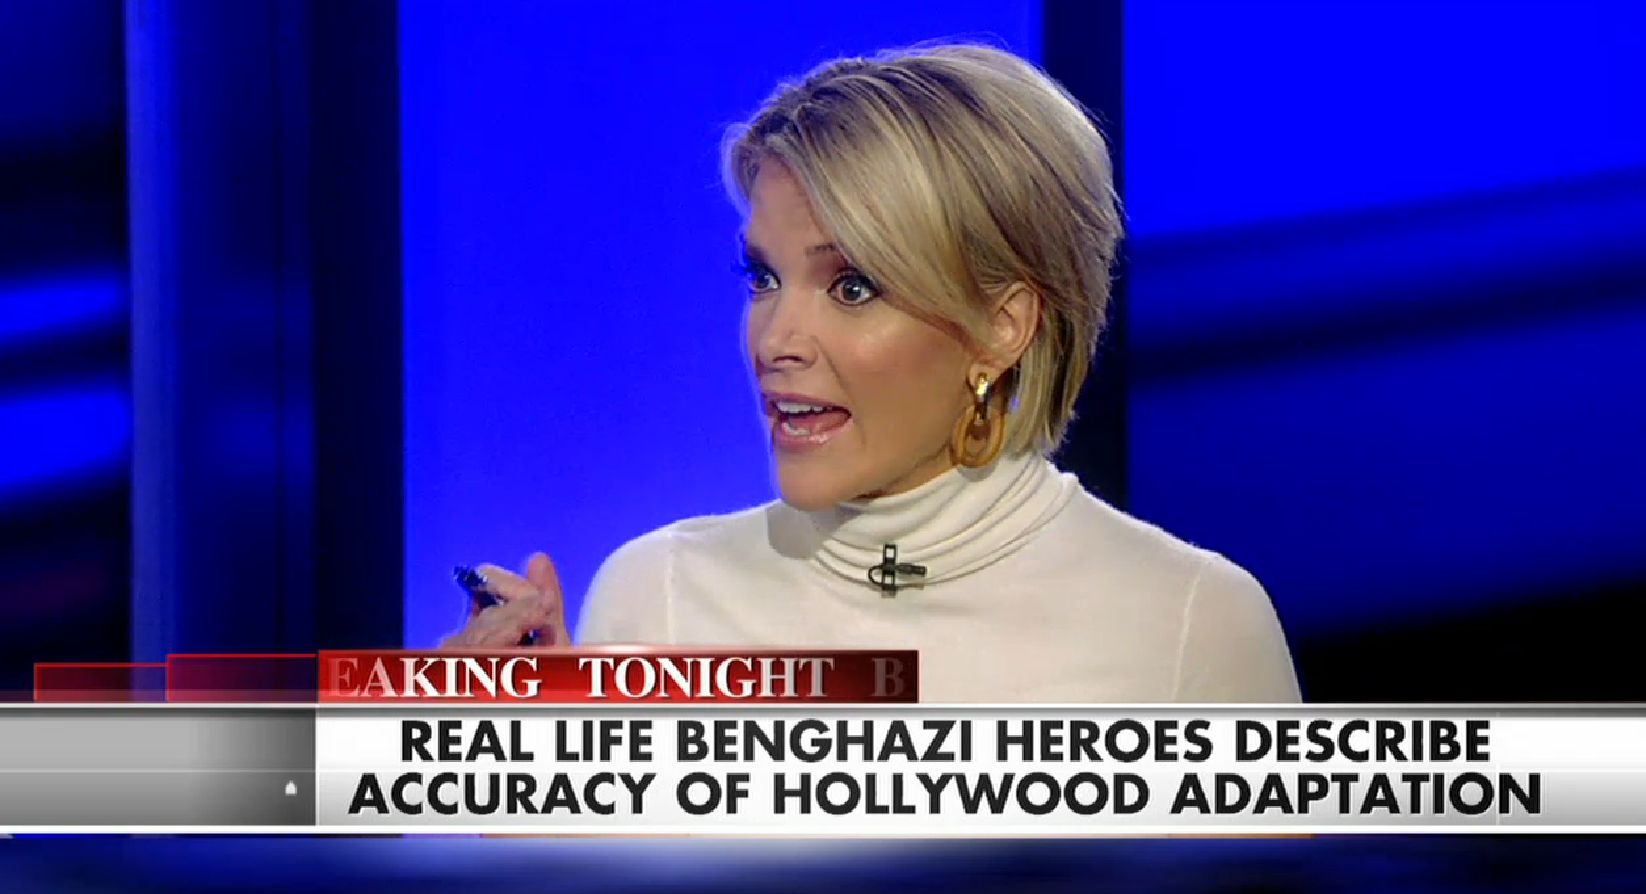 megyn kelly turned her show into a junket for michael bay's